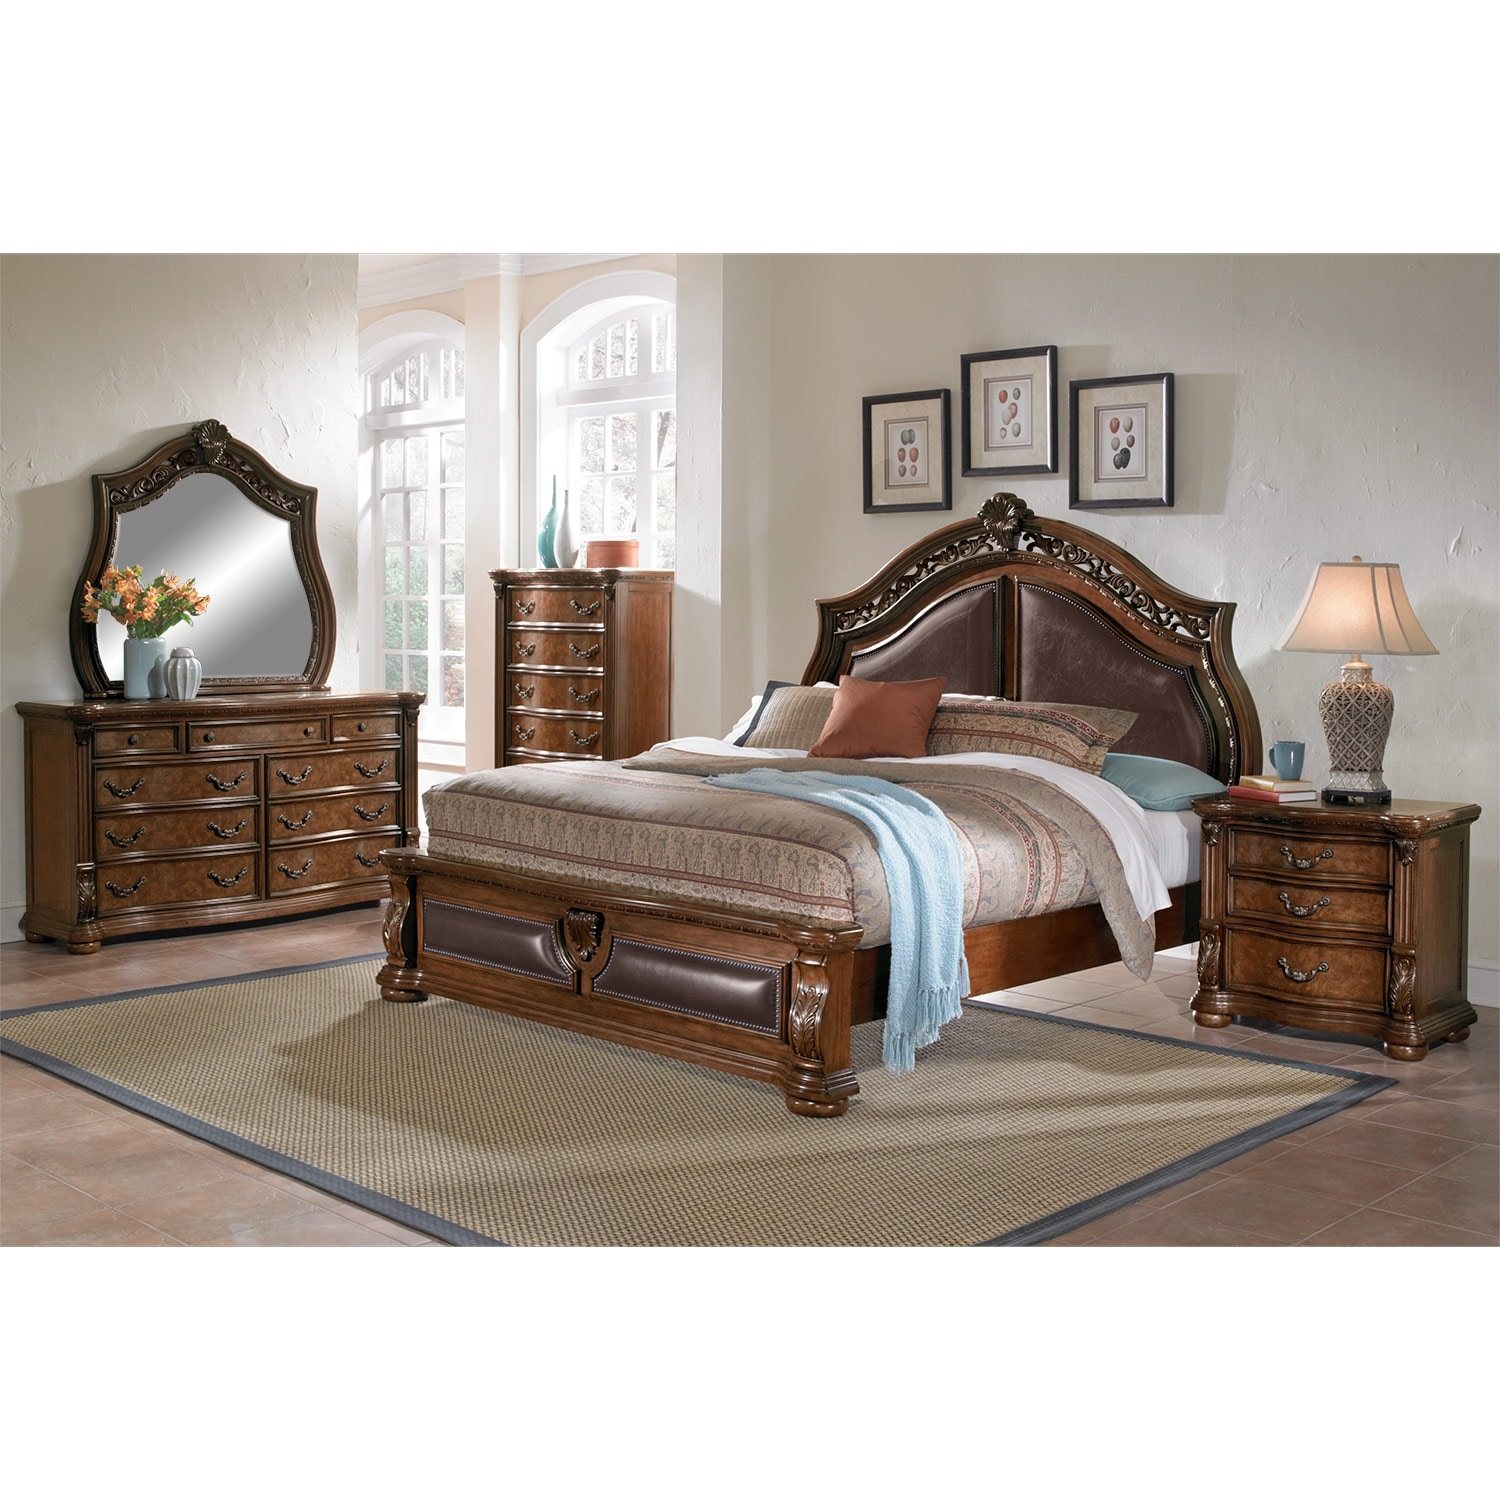 morocco king bed pecan american signature furniture. Black Bedroom Furniture Sets. Home Design Ideas